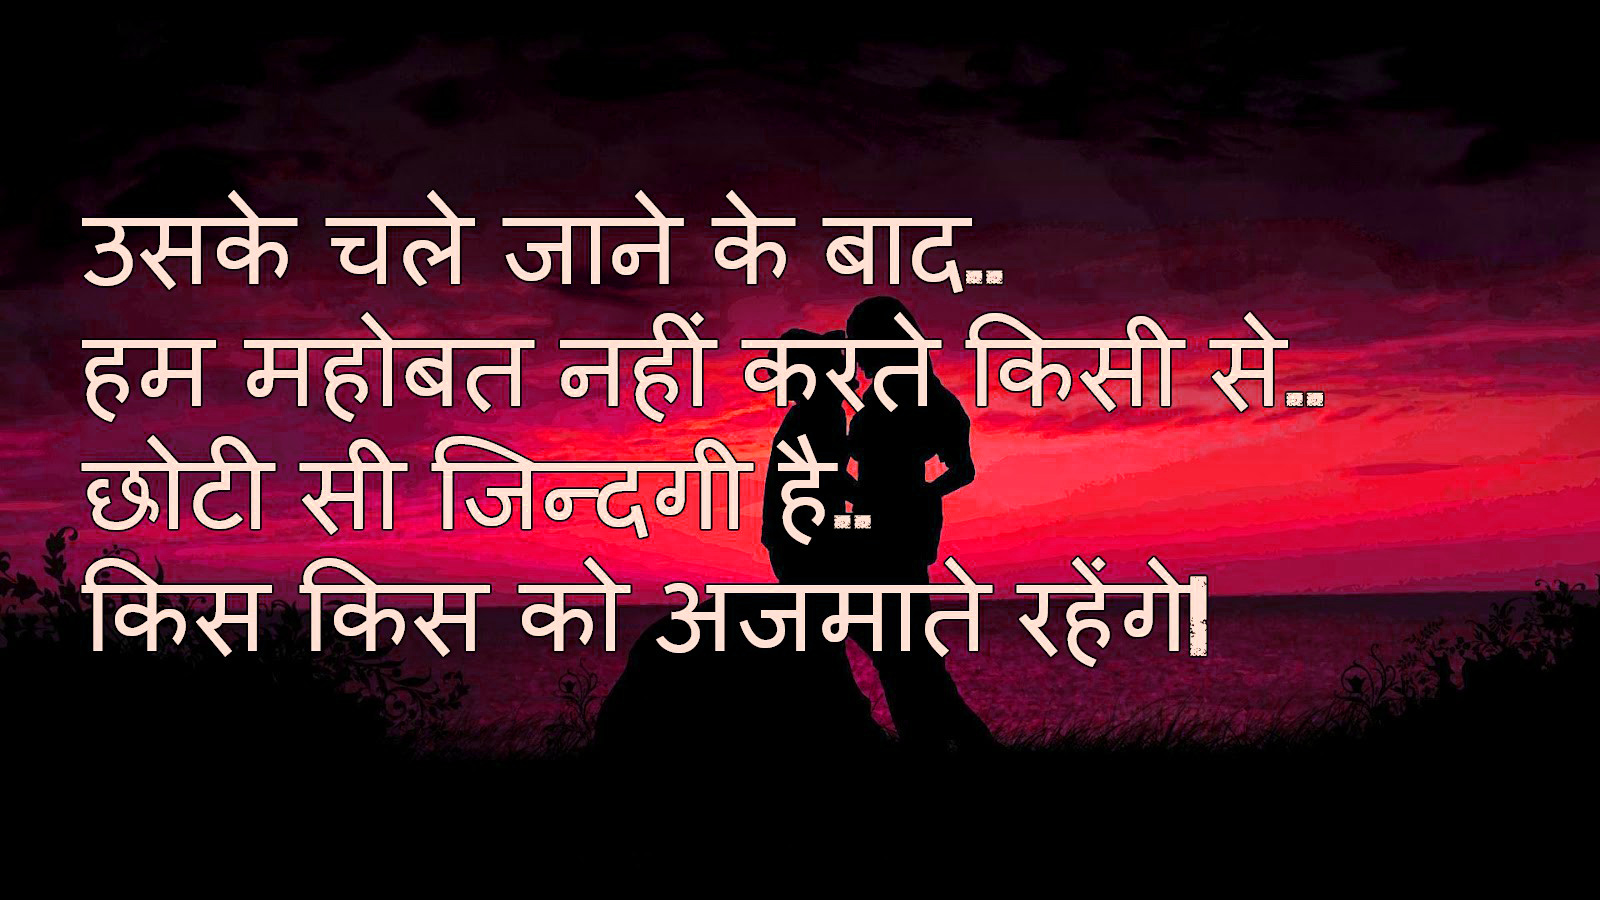 Hindi Sad Love Romantic Shayari Photo Wallpaper Pictures HD